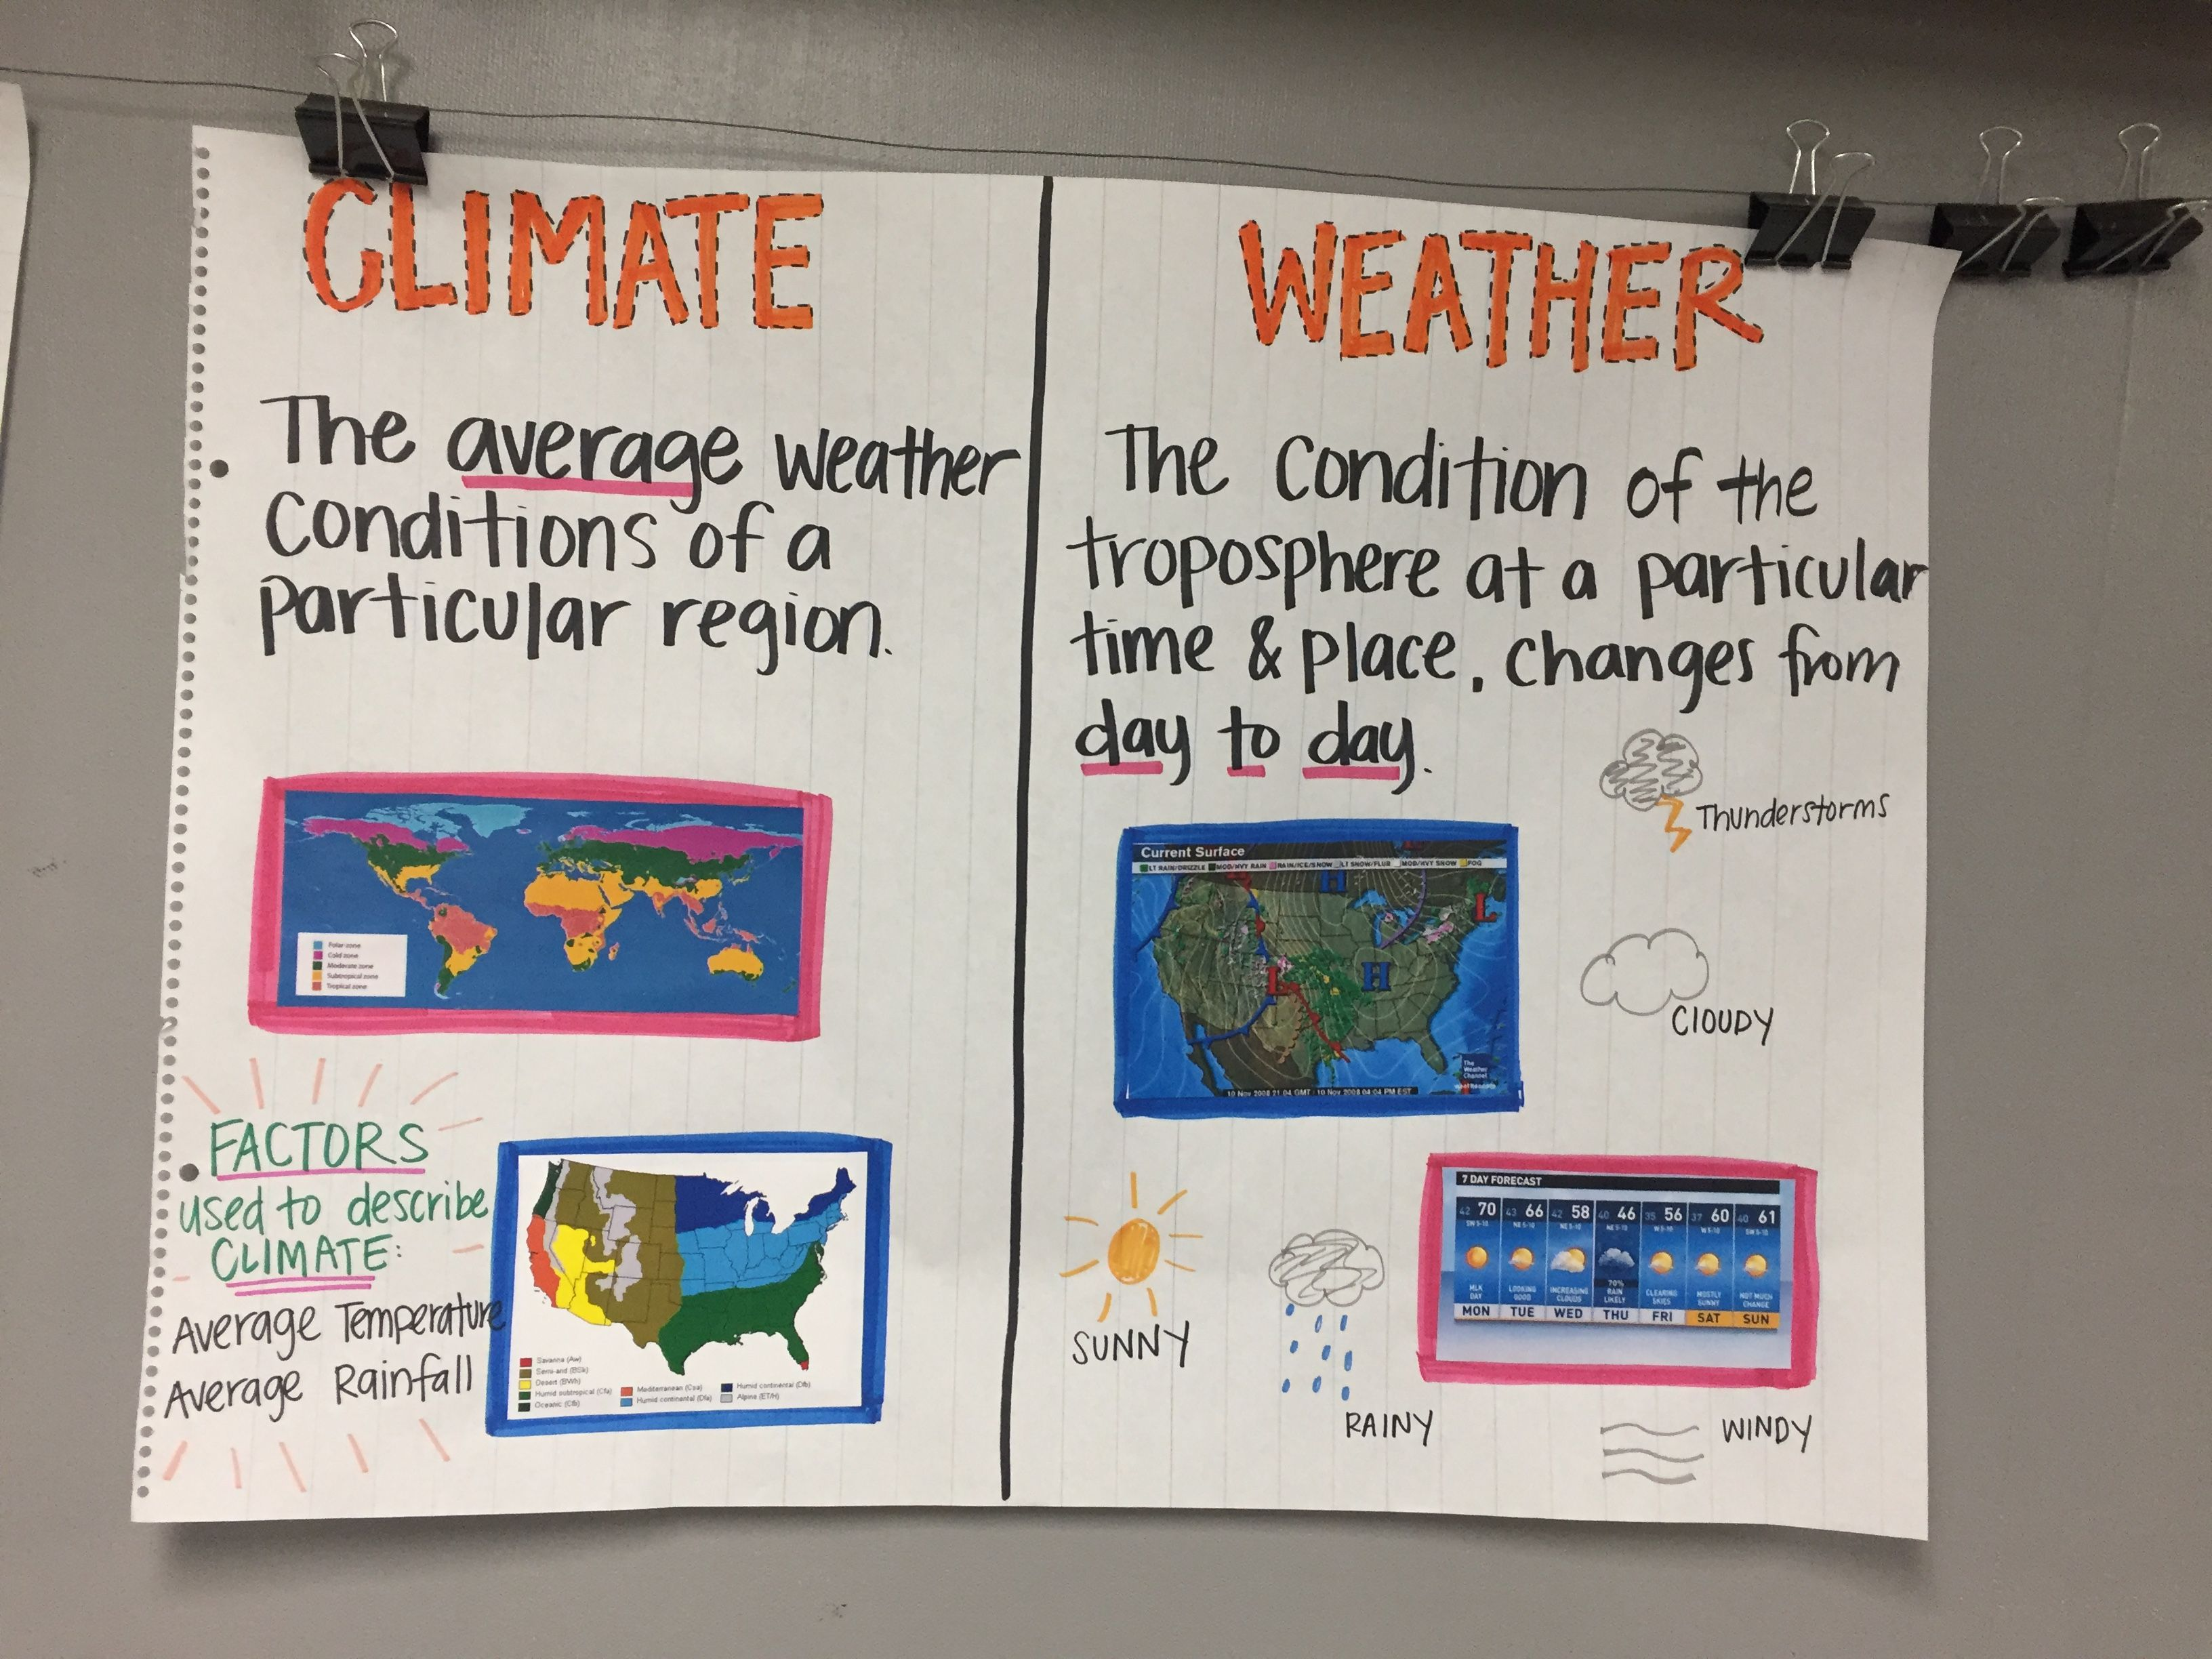 medium resolution of We have one day where we are discussing climate and I think this would be a  good review or introductory…   Weather science